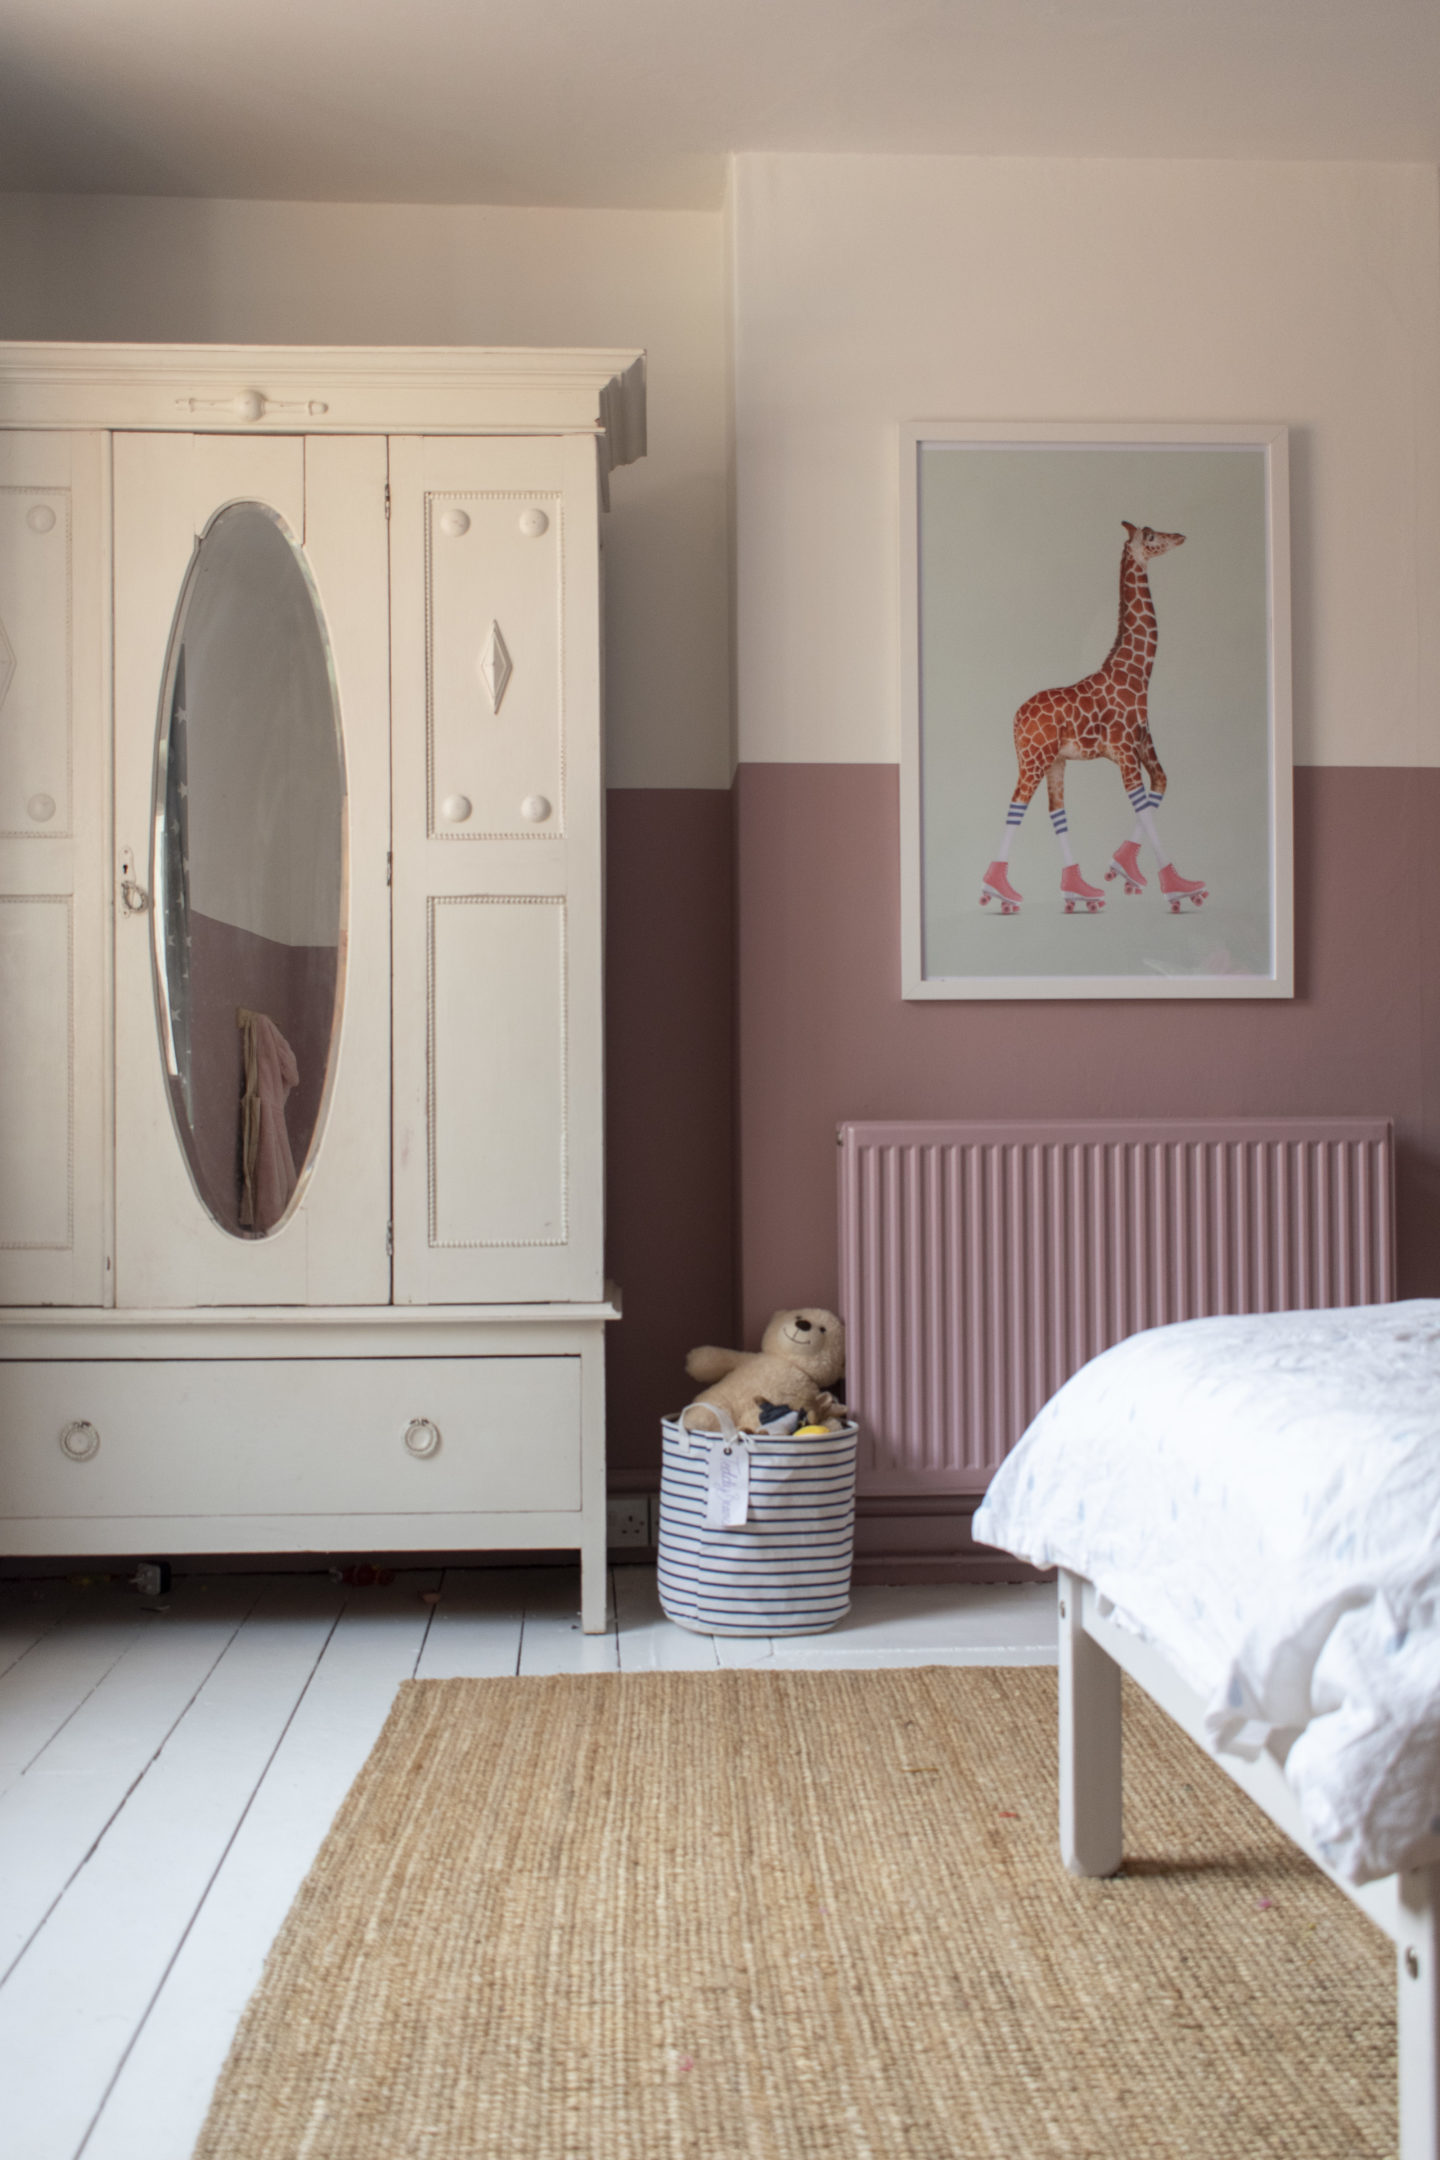 half painted walls in cinder rose farrow and ball